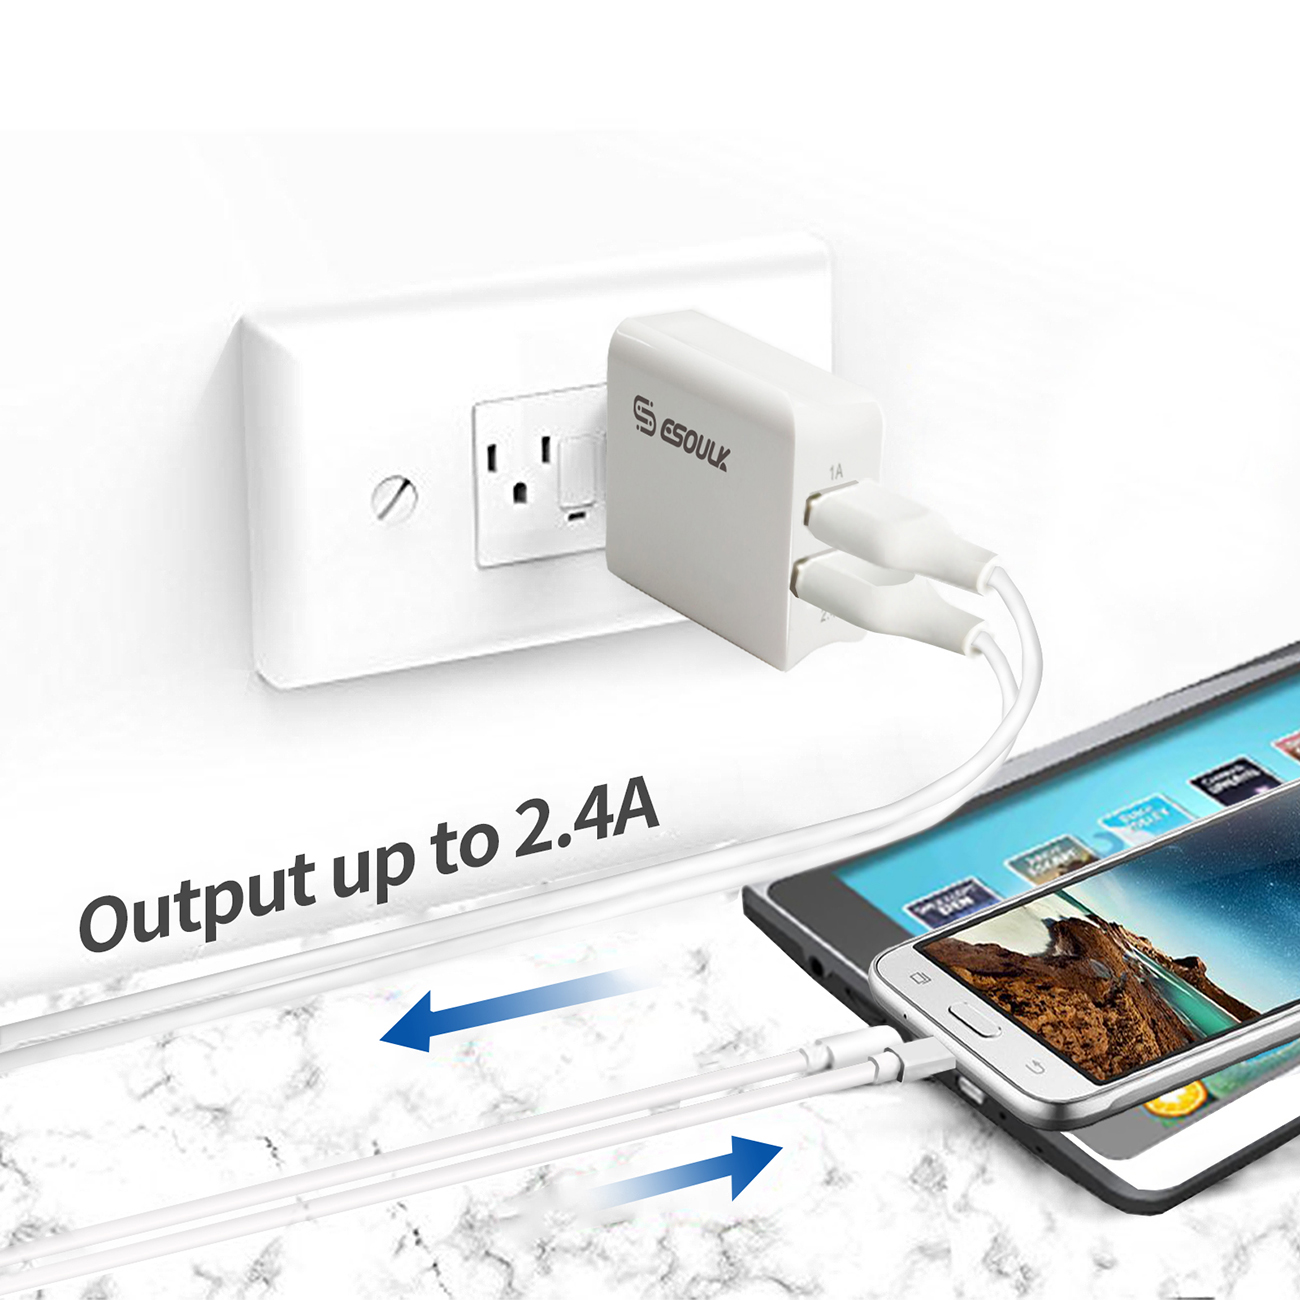 Esoulk 12W 2.4A Dual USB Travel Wall charger With 5FT  Micro USB Charging Cable In White